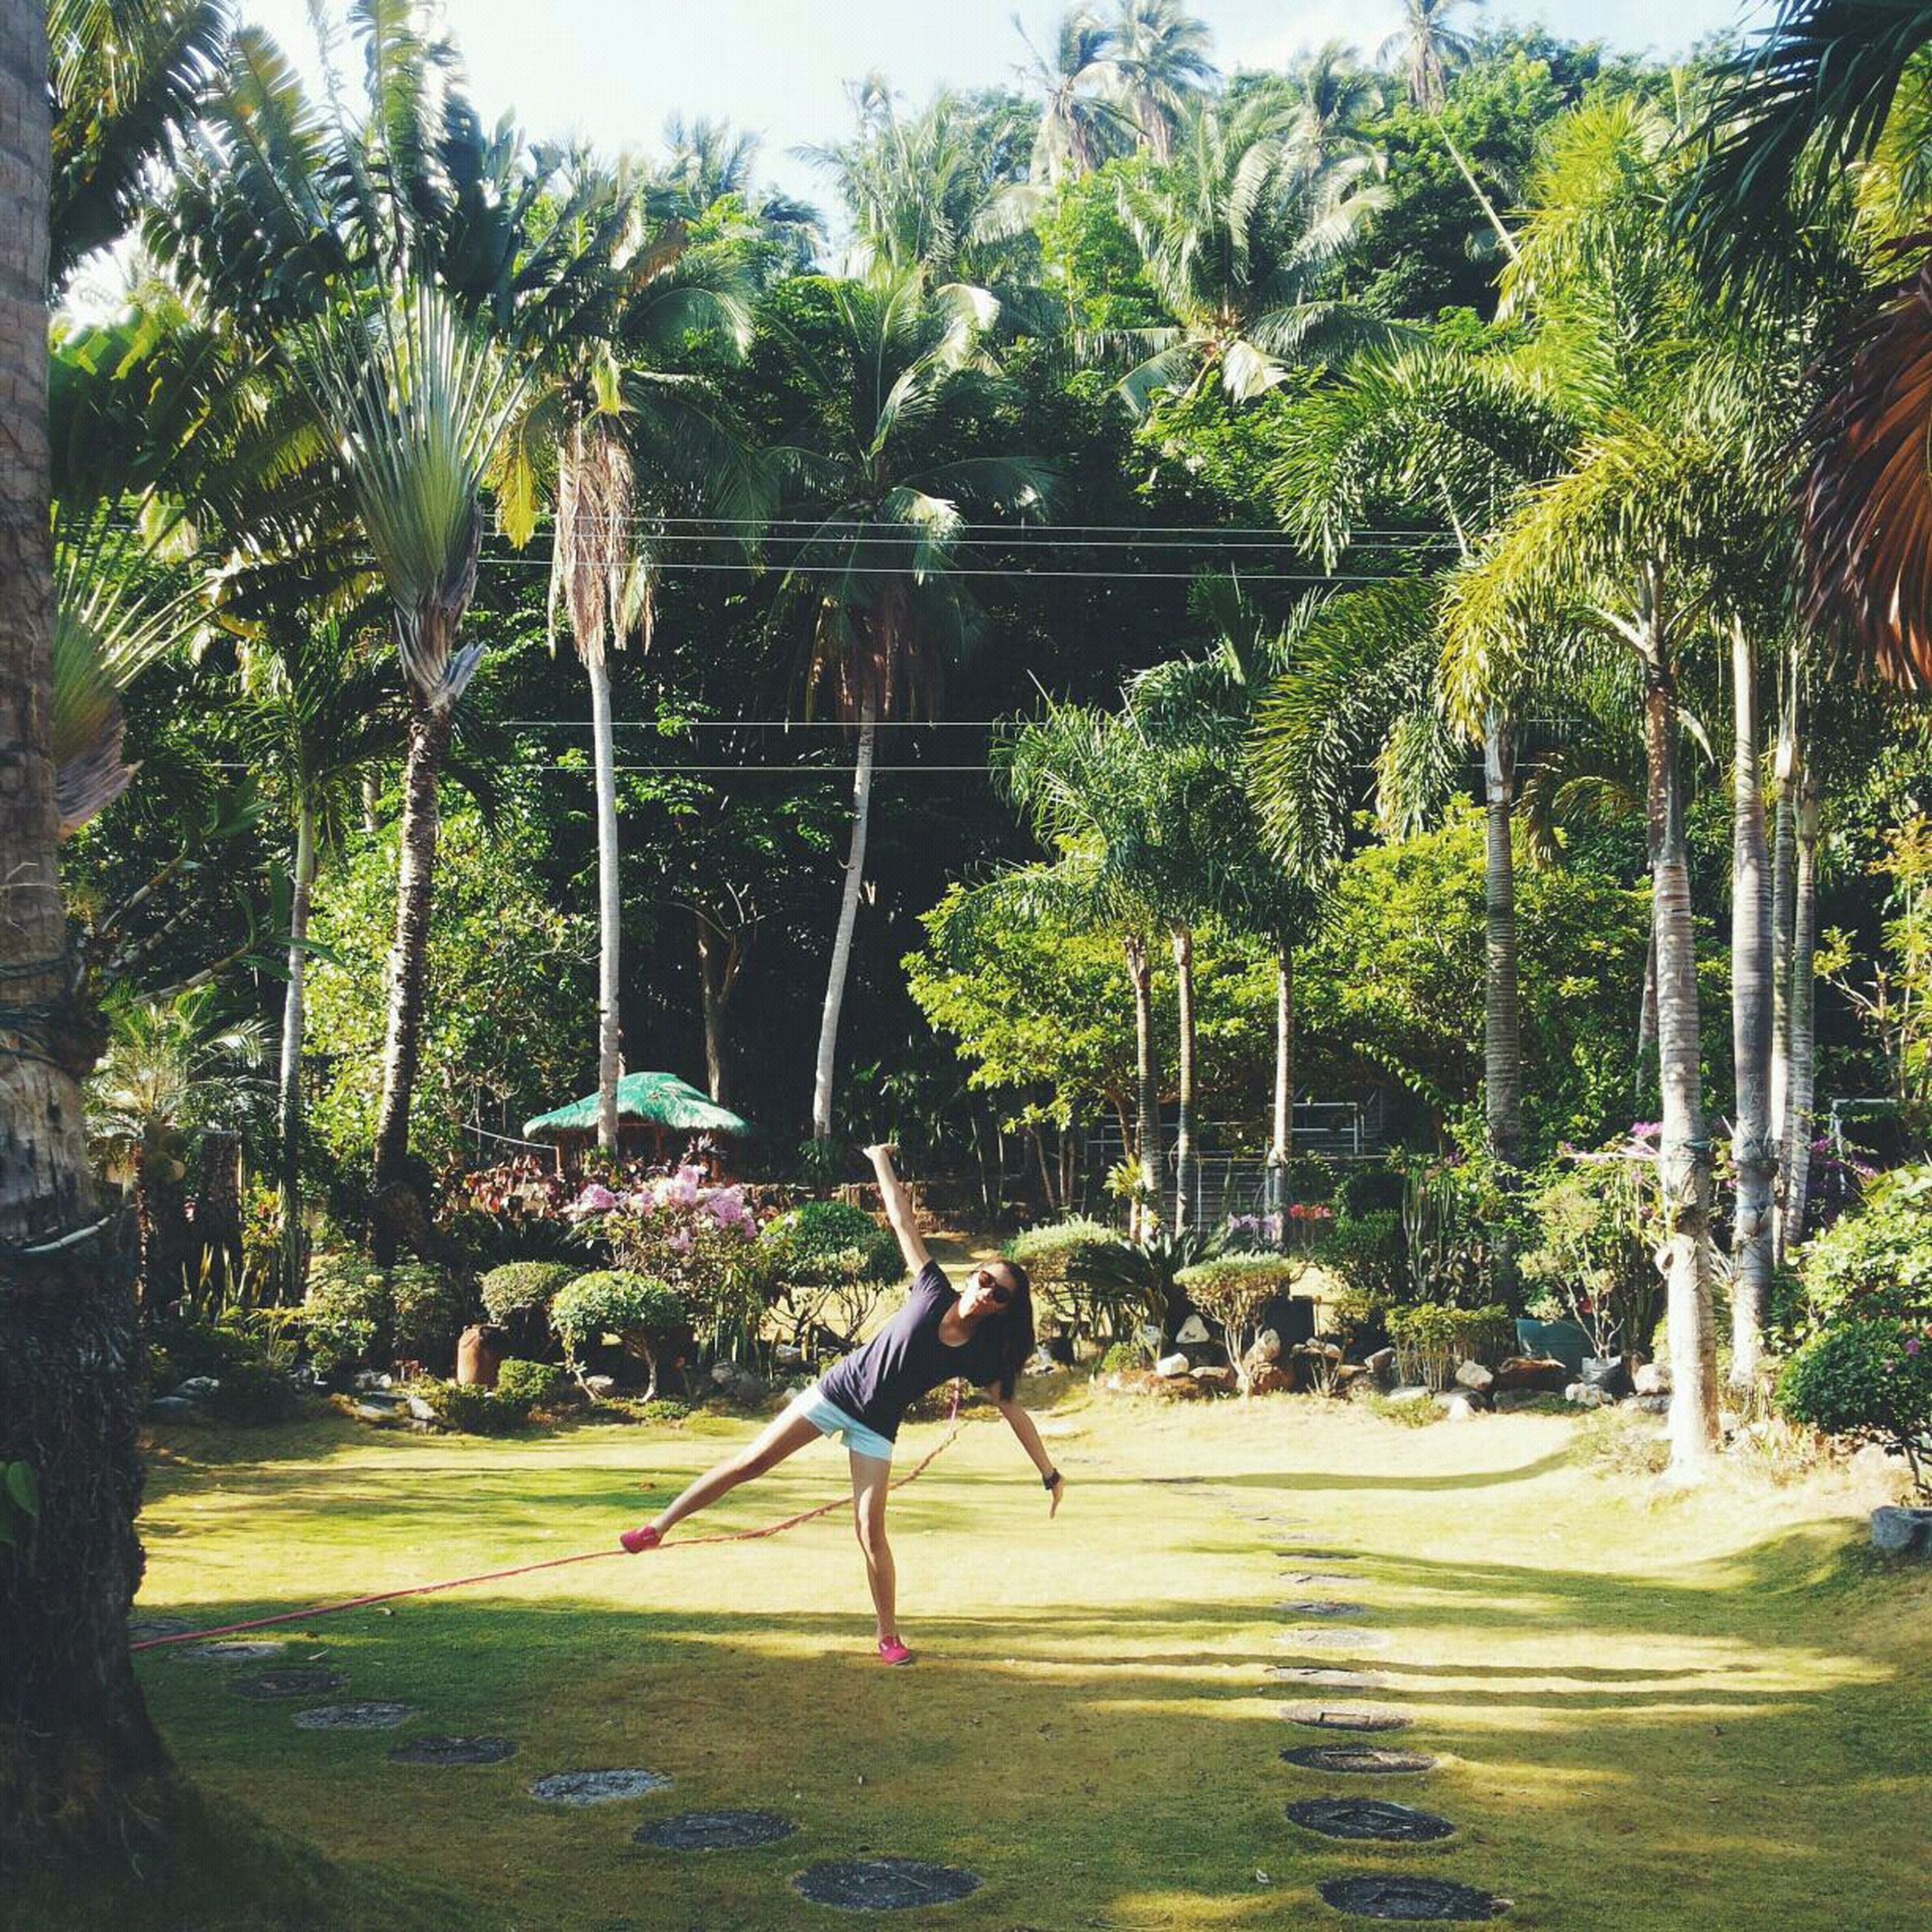 tree, growth, full length, palm tree, park - man made space, green color, sunlight, shadow, nature, plant, day, grass, leisure activity, outdoors, lifestyles, tree trunk, men, animal representation